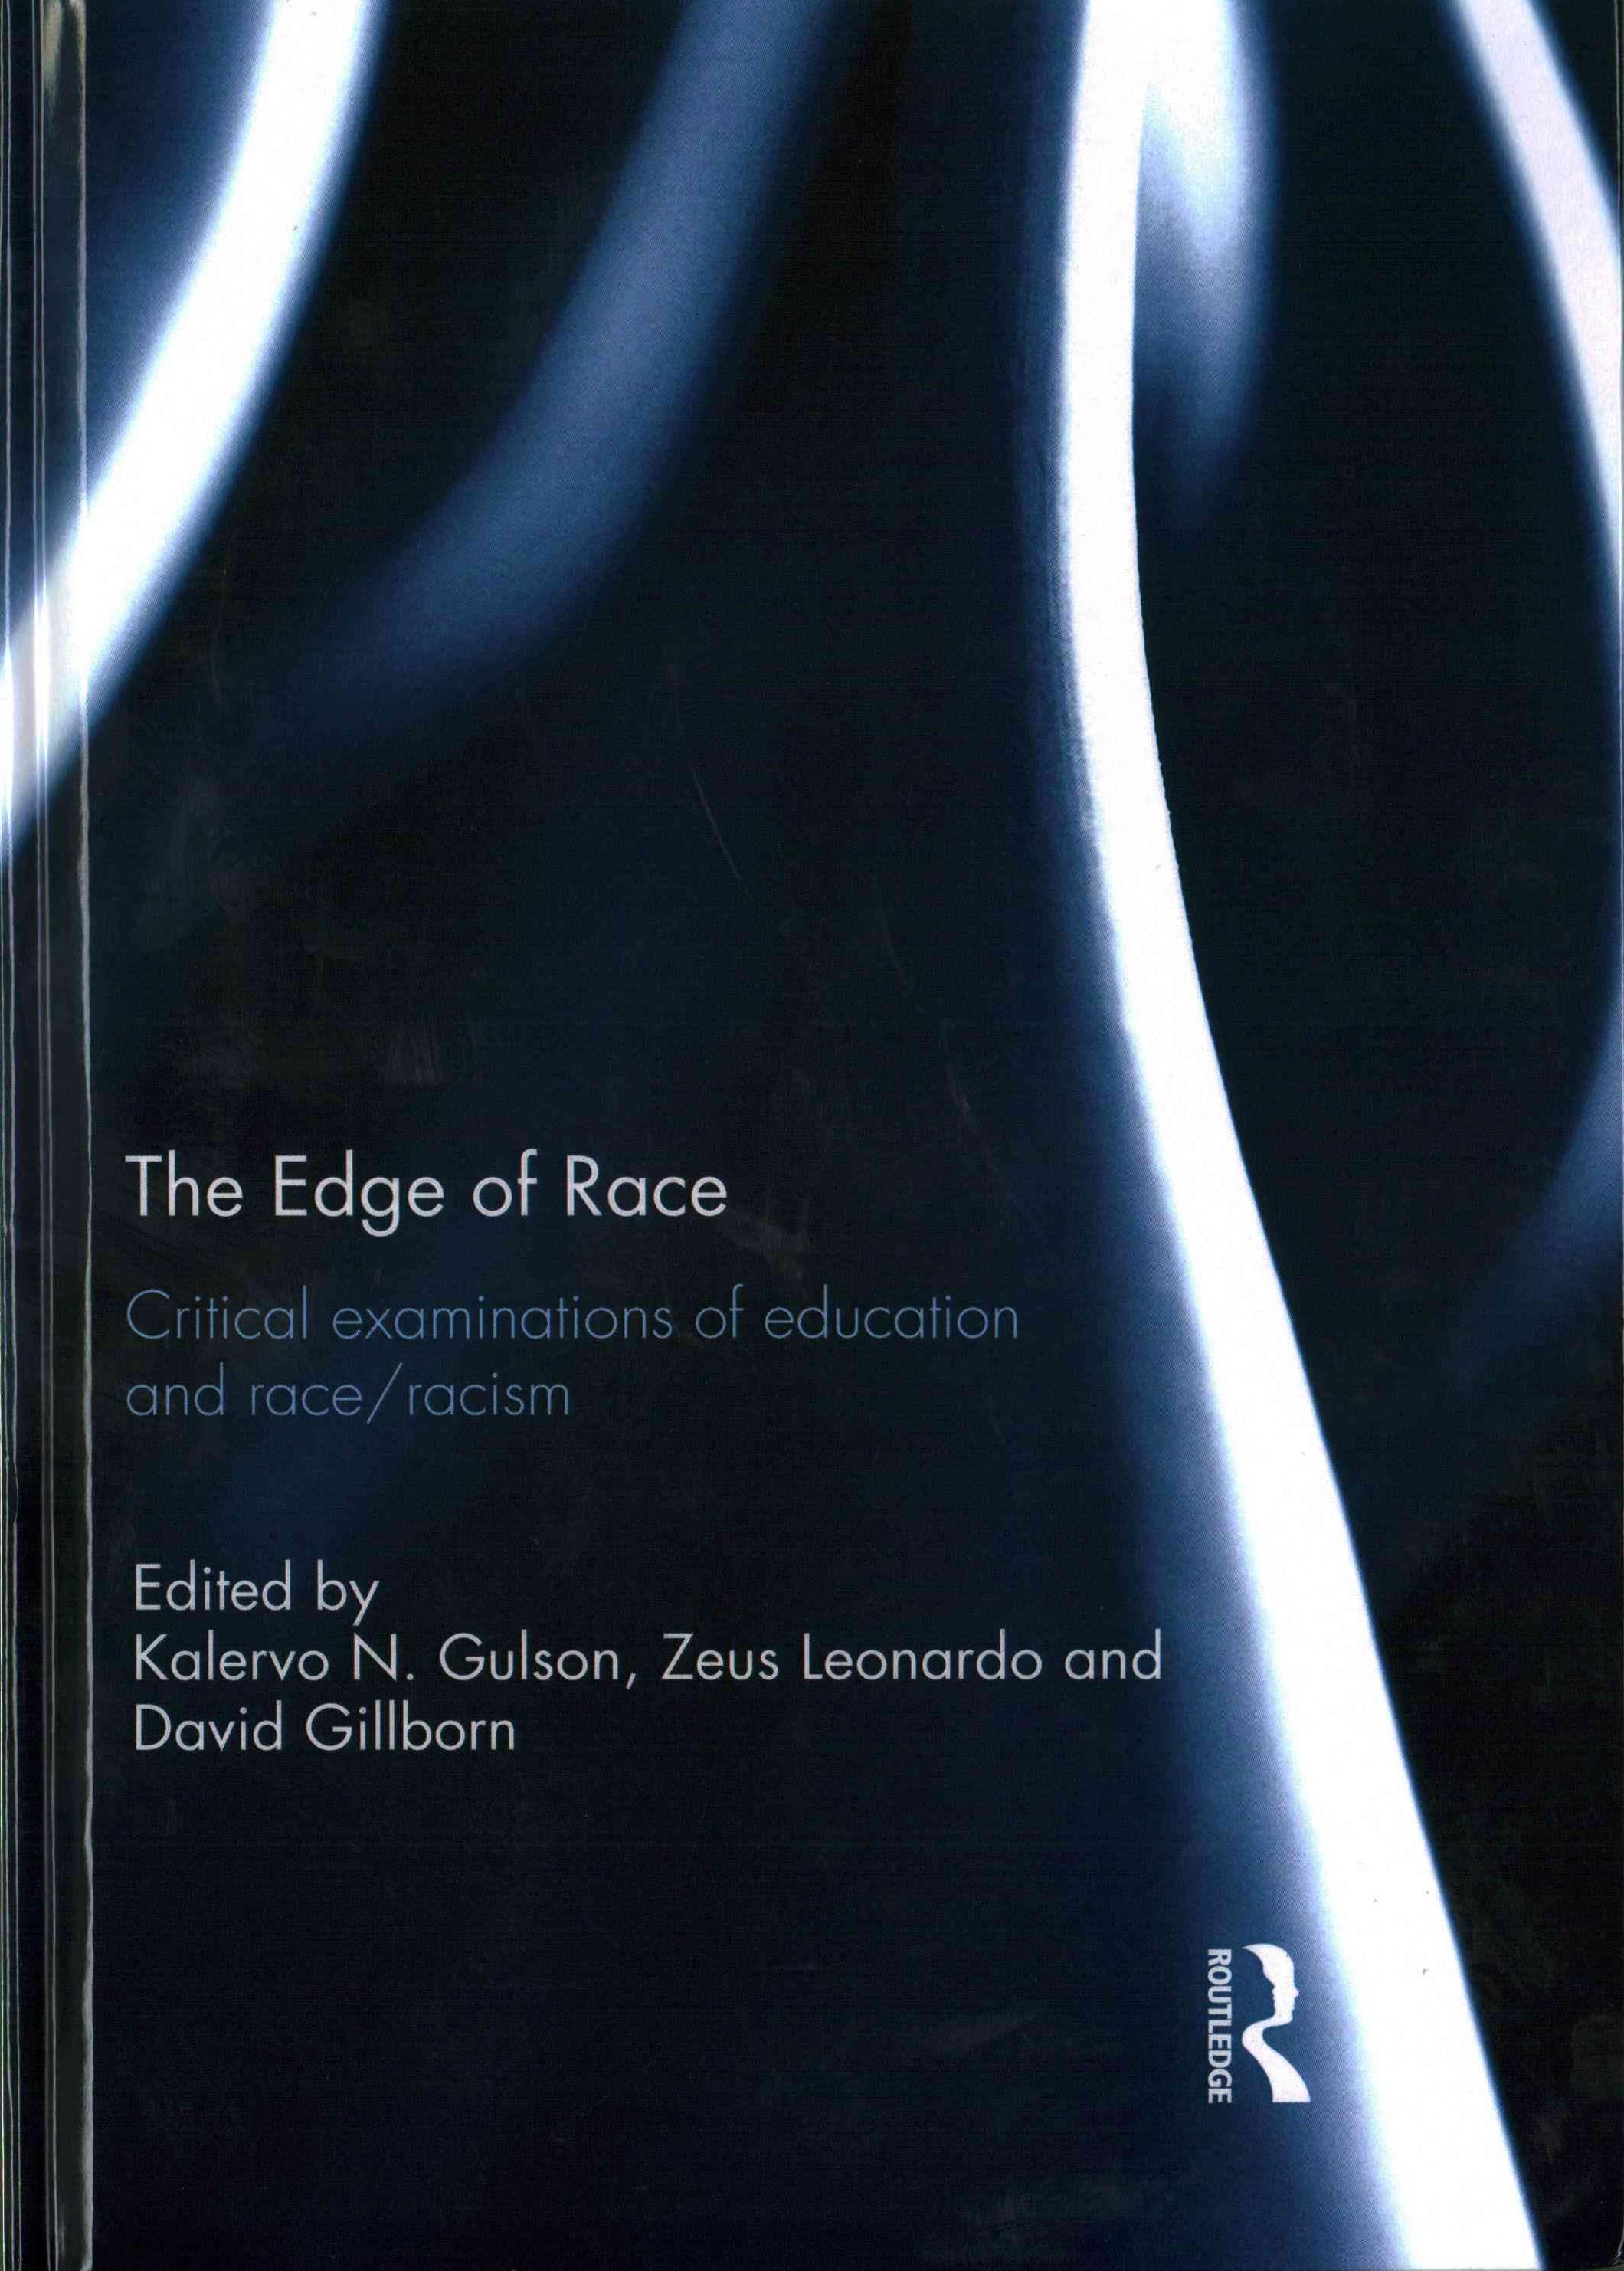 The Edge of Race